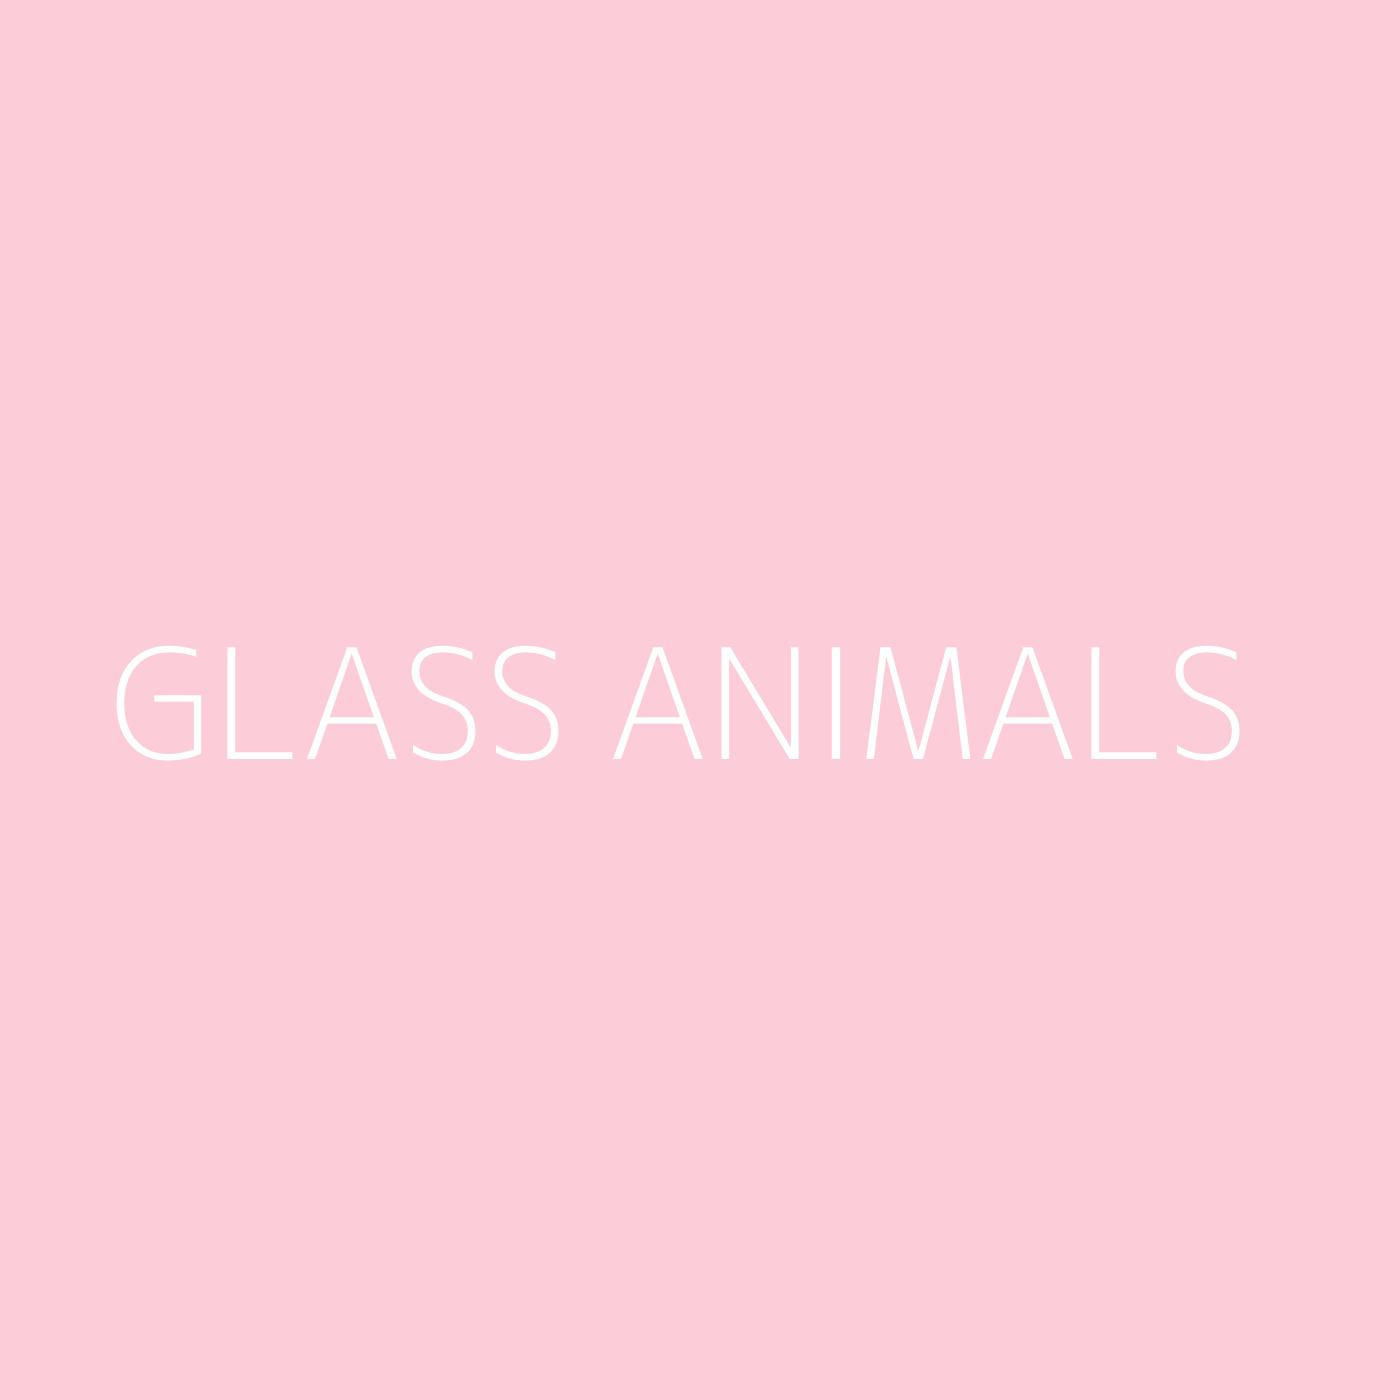 Glass Animals Playlist Artwork